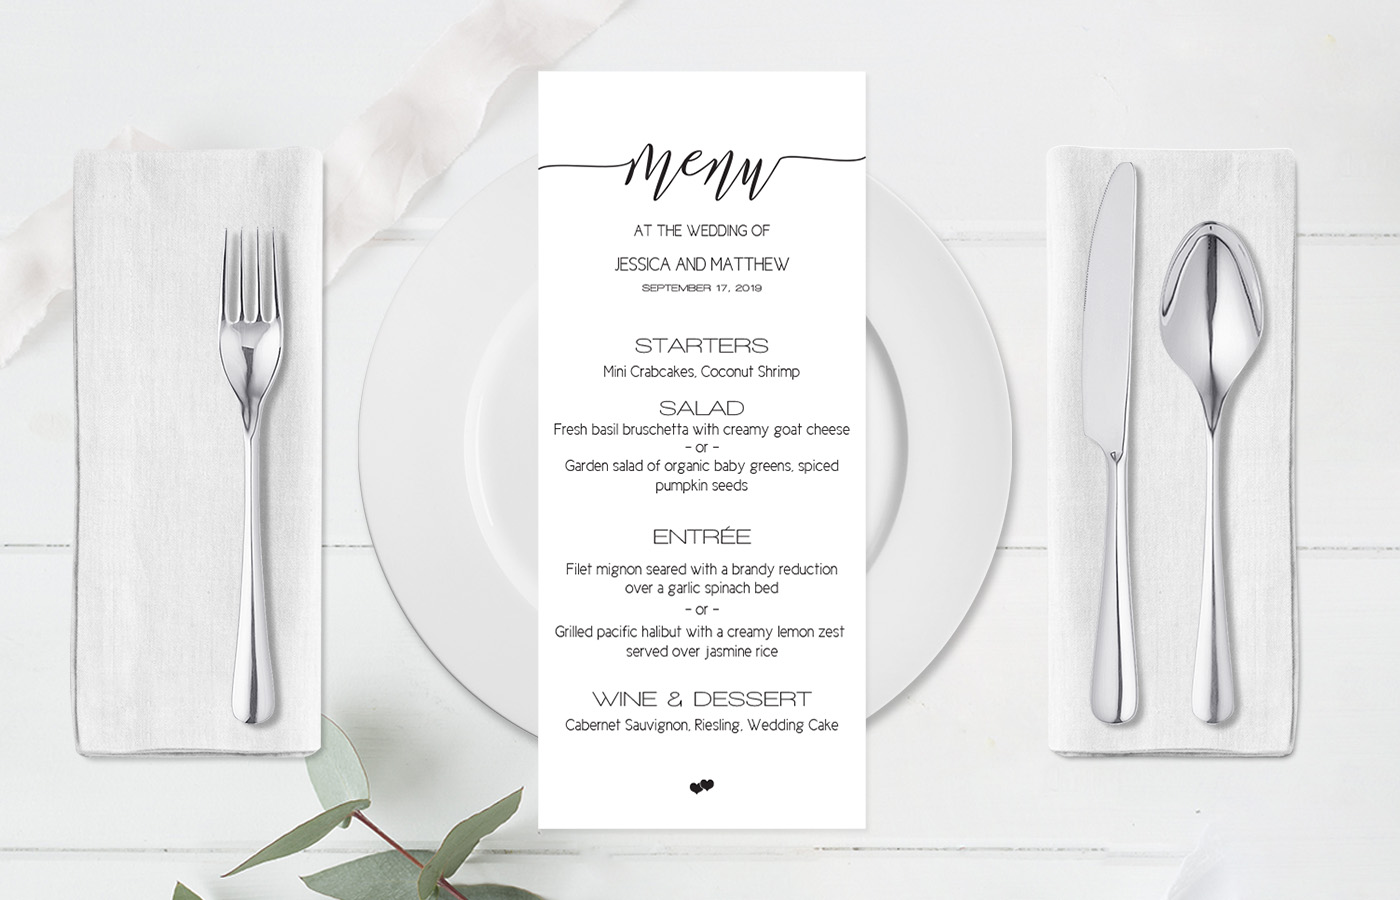 Wedding Menu Template.Wedding Menu Template Wedding Menu Printable Calligraphy Wedding Menu Wedding Menu Printable Template Kraft Dinner Menu Diy You Print